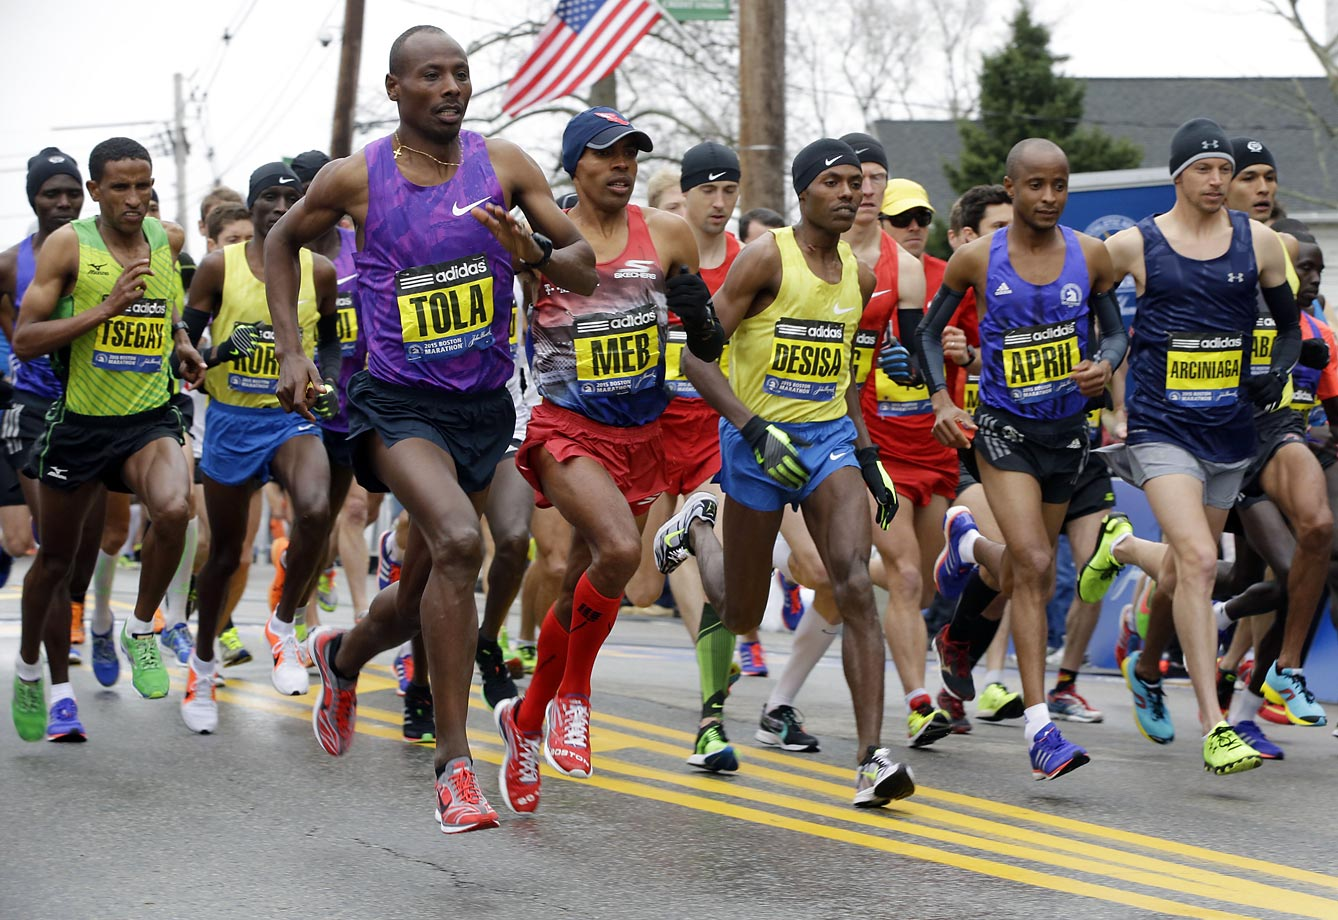 From left, Yemane Adhane Tsegay of Ethiopia, Wesley Korir of Kenya, Tadese Tola of Ethiopia, Meb Keflezighi of San Diego, Lelisa Desisa of Ethiopia, Lusapho April of South Africa, and Nicholas Arciniaga of Flagstaff, Ariz., leave the start line.